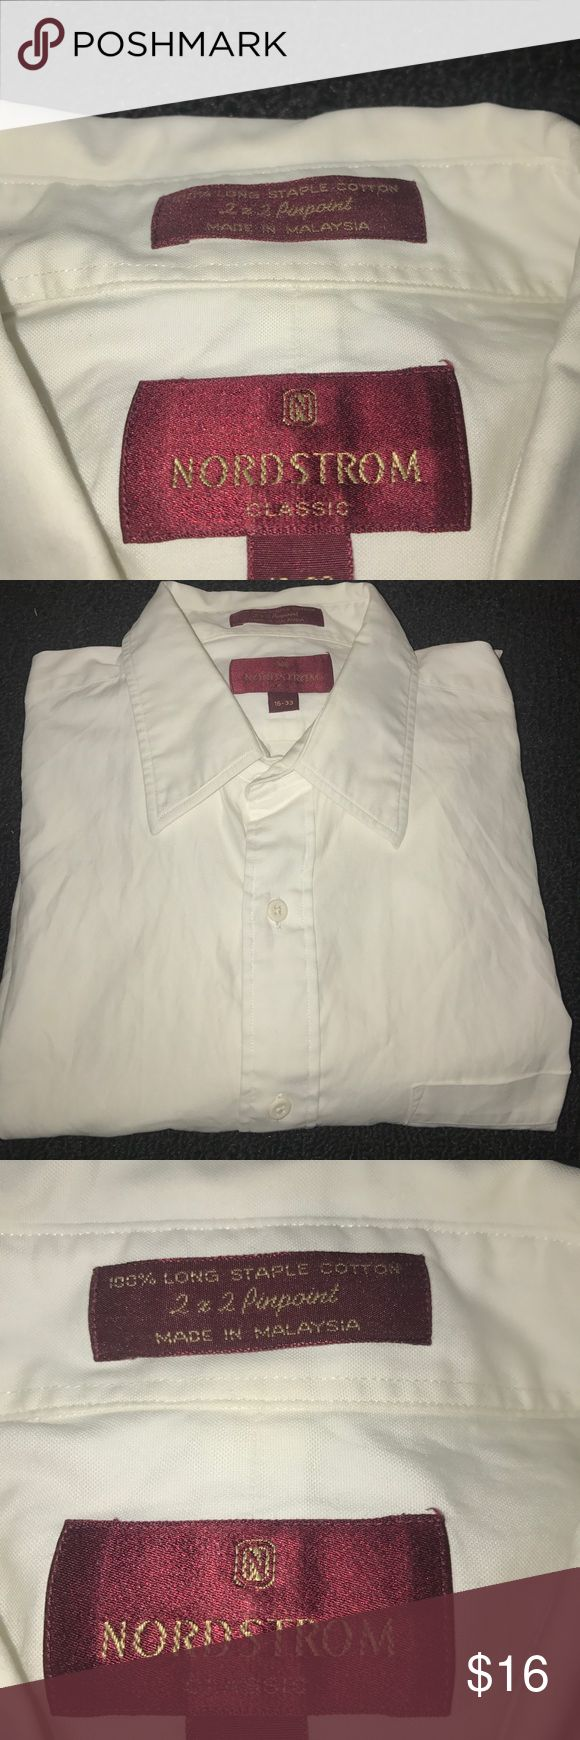 Men's Nordstrom White Dress Shirt size Large Men's Nordstrom White Dress Shirt size Large still in great condition no rips or stains. Nordstrom Shirts Dress Shirts